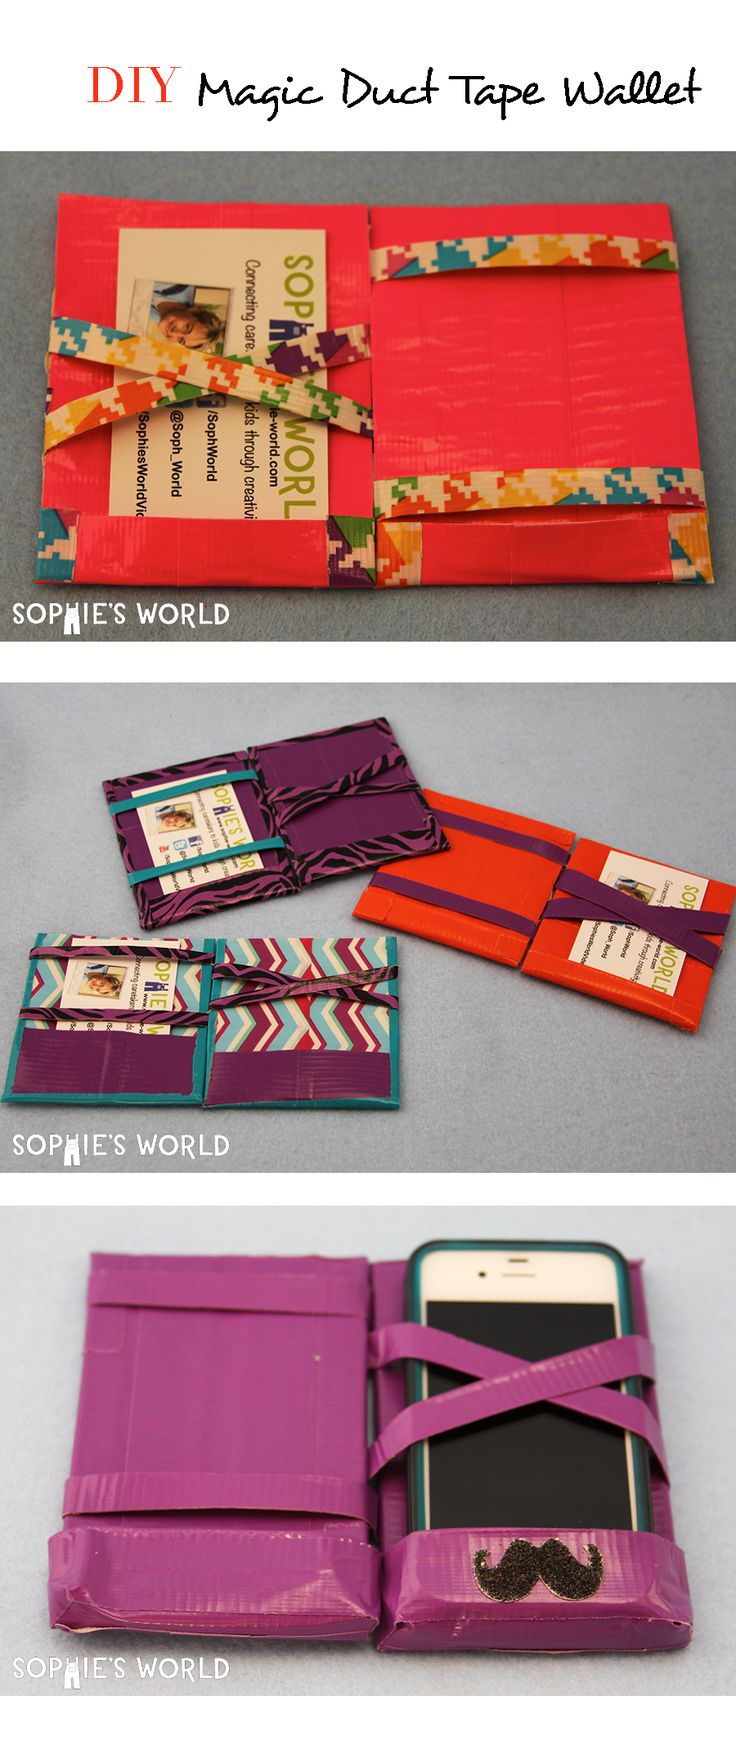 Originally invented in the 1920's to stash tips and receipts, the magic wallet snugly secures all your cash and cards. Just drop them inside and voilà! The wallet (magically) organizes and keeps everything safe. DIY with duct tape.